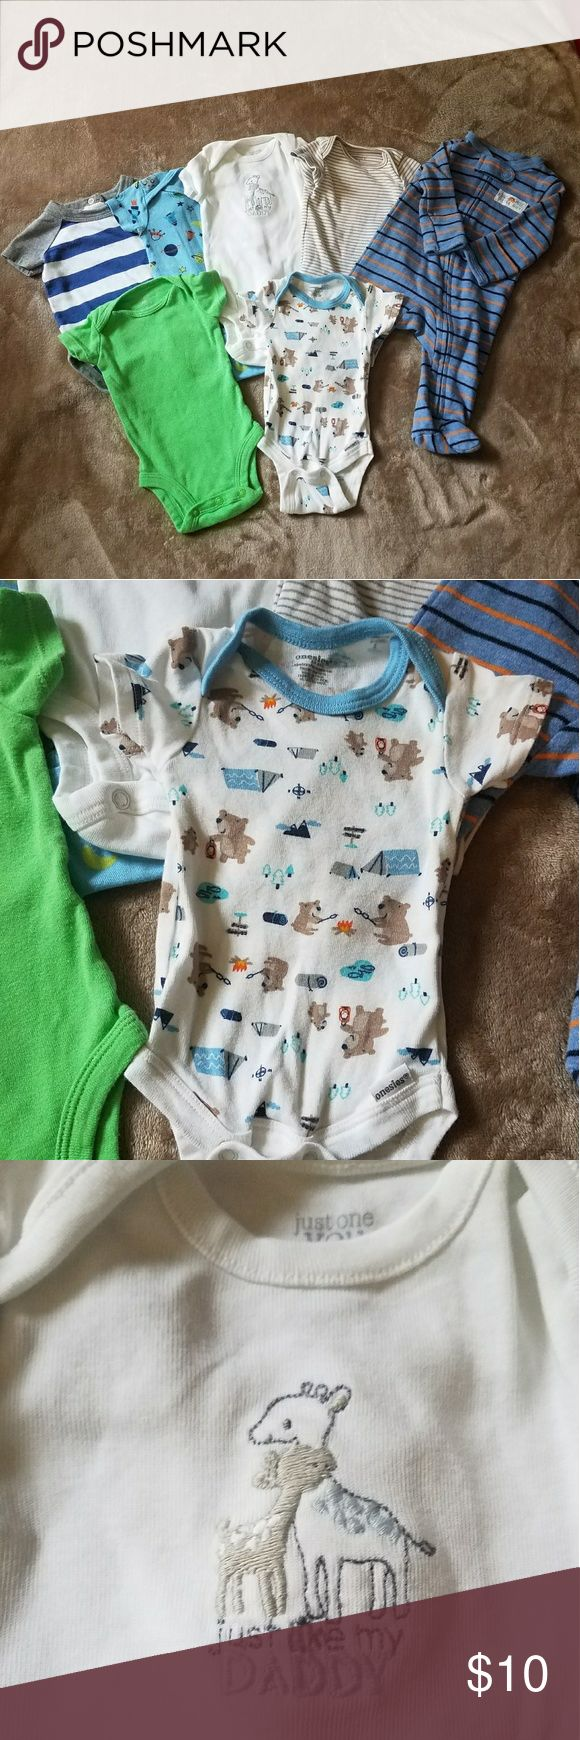 NEWBORN BUNDLE  Boy Clothing 7 articles of NEWBORN boy clothing. 4 pieces have not been worn and the other 3 were worn once. 💙 You can never have enough onesies. 4 of them are CARTER'S brand, one of then is CIRCO brand and the other two were purchased from Walmart. Carter's One Pieces